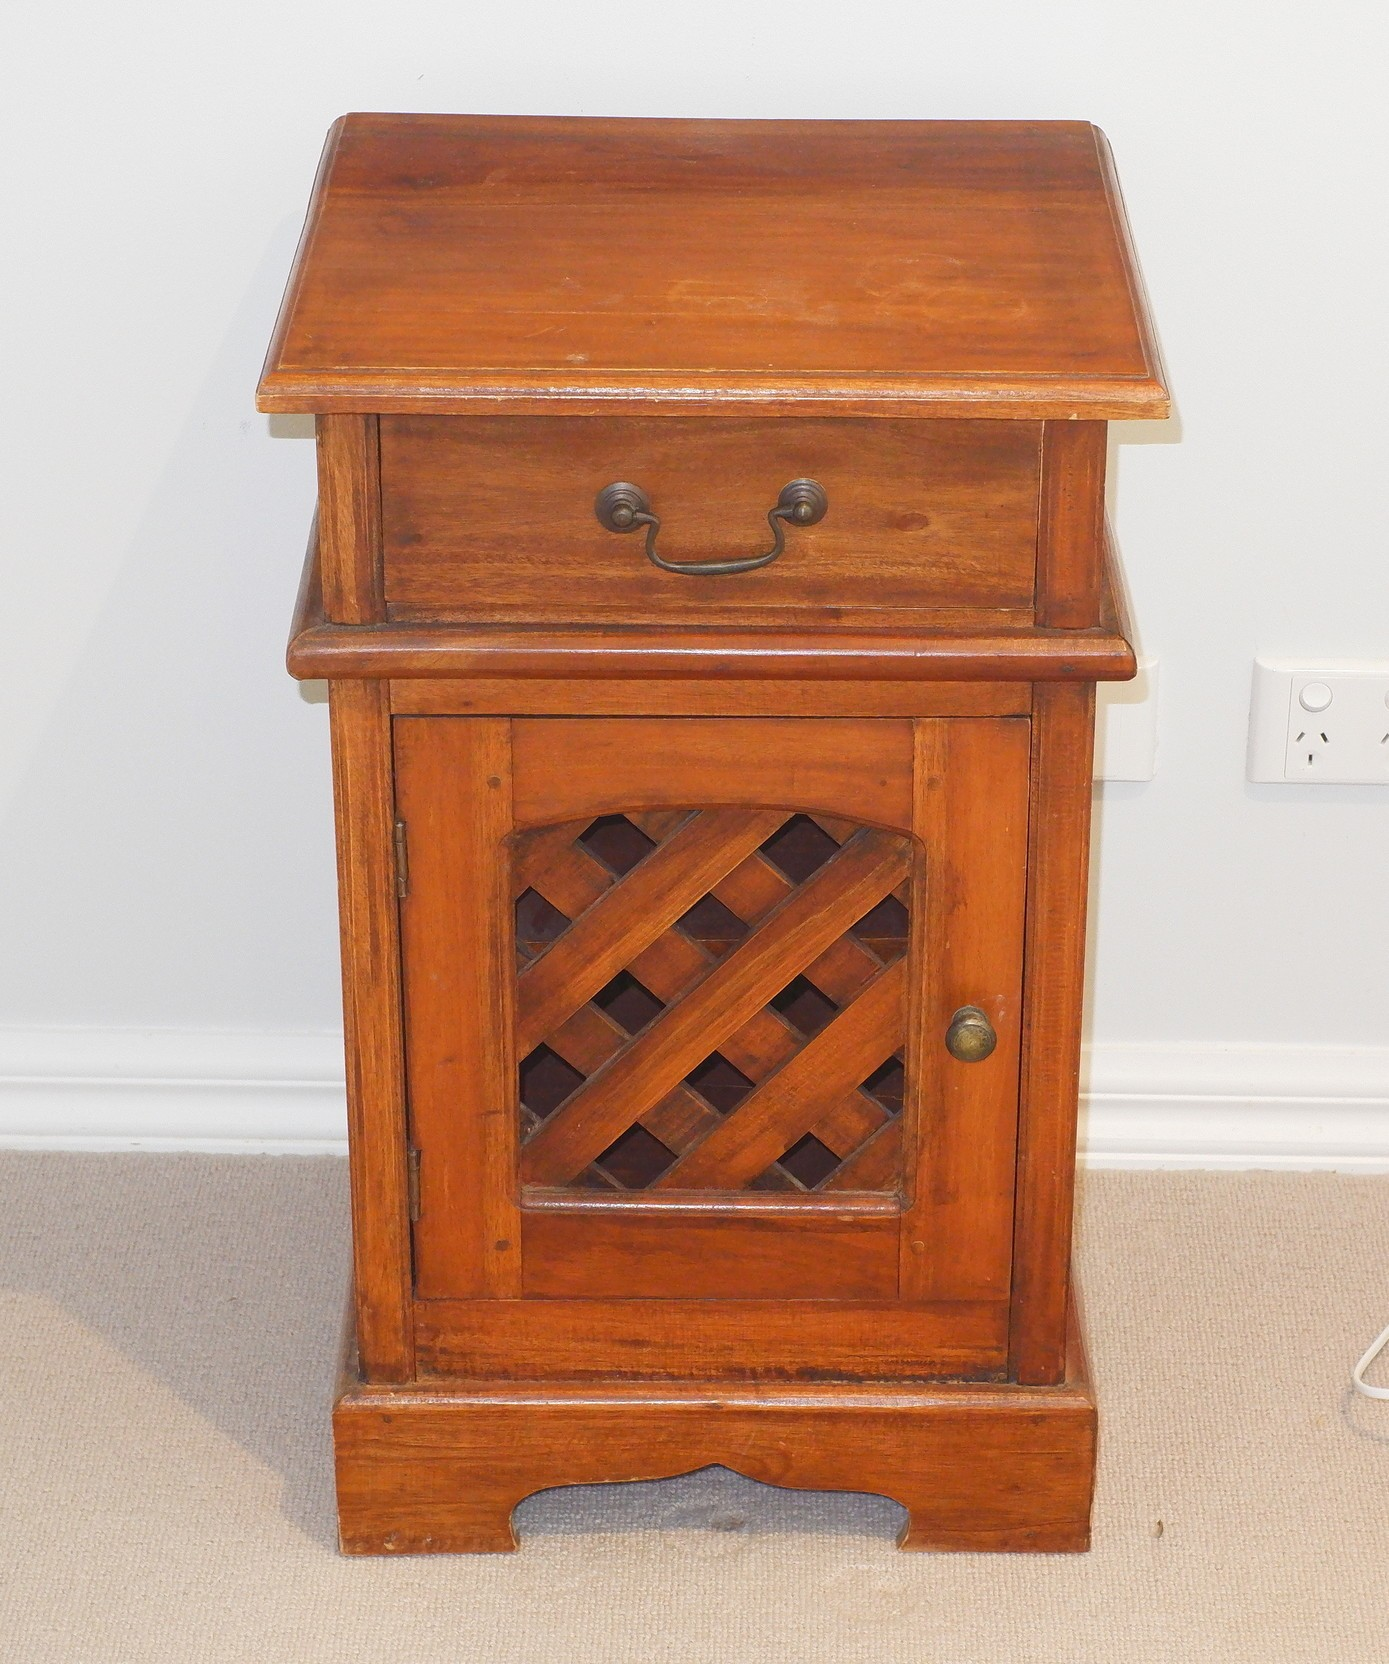 'Indonesian Mahogany Bedside Table'